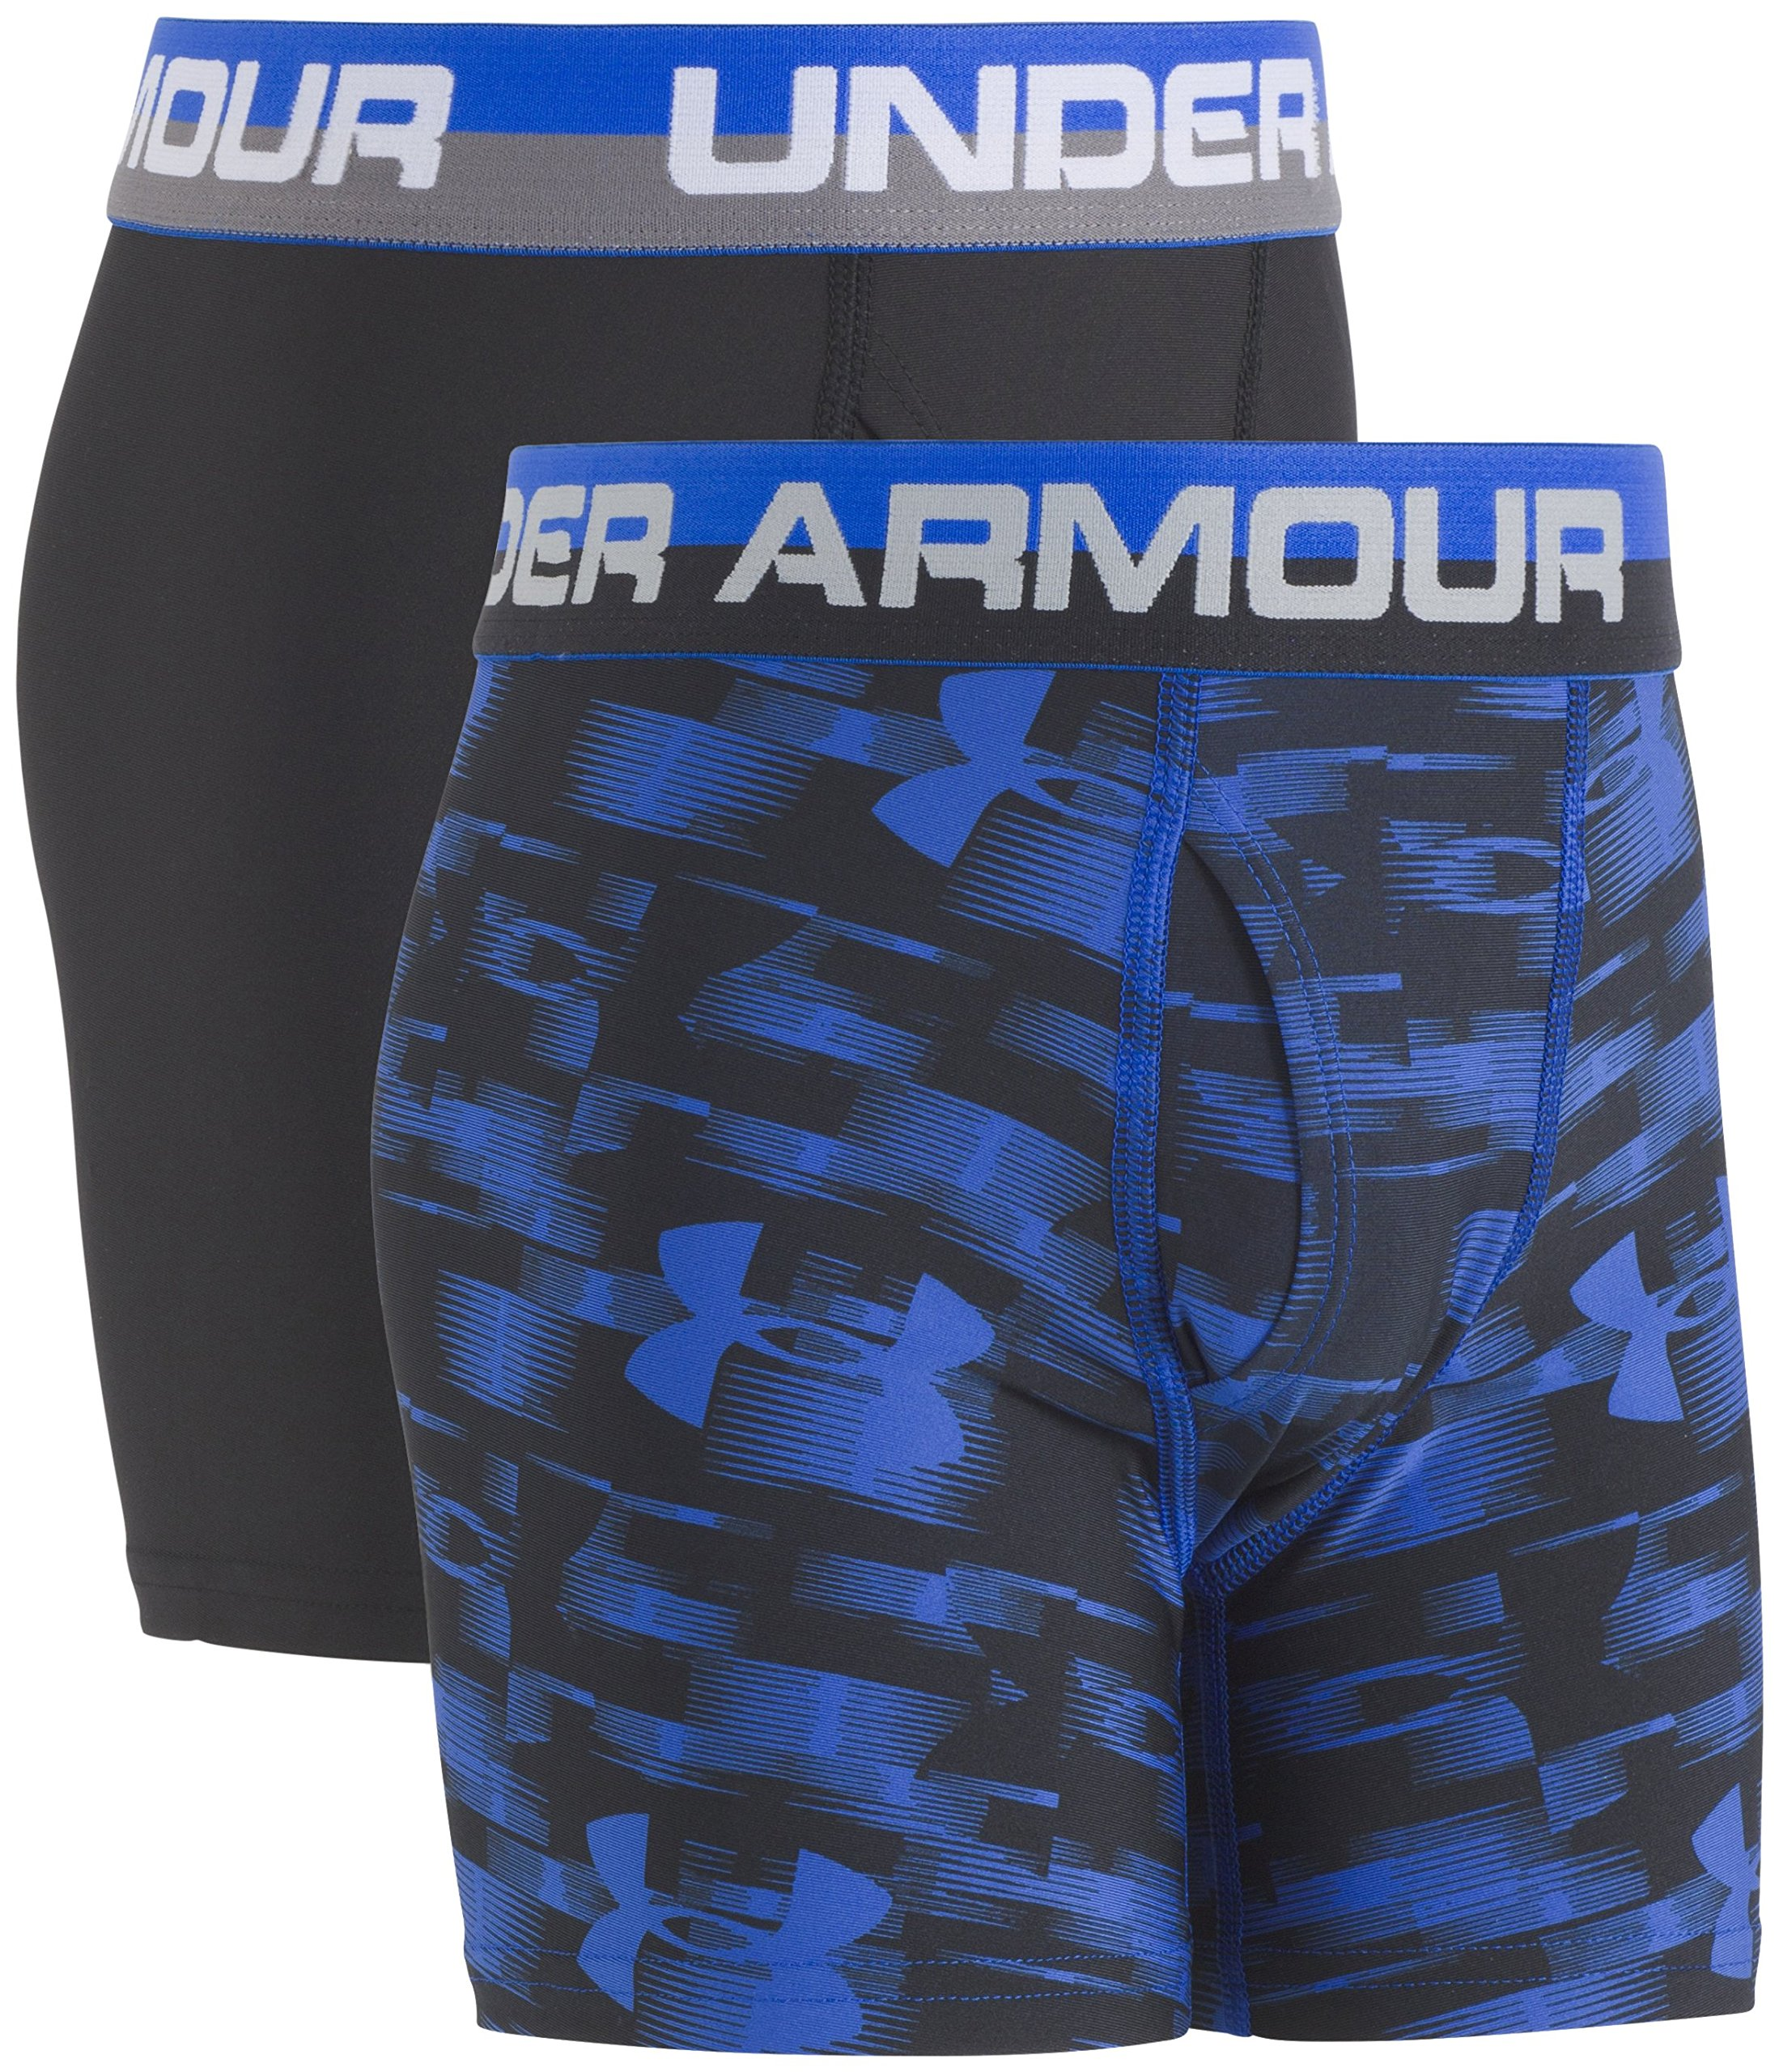 Under Armour Big Boys' 2 Pack Performance Boxer Briefs, Ultra Blue/Black, YSM